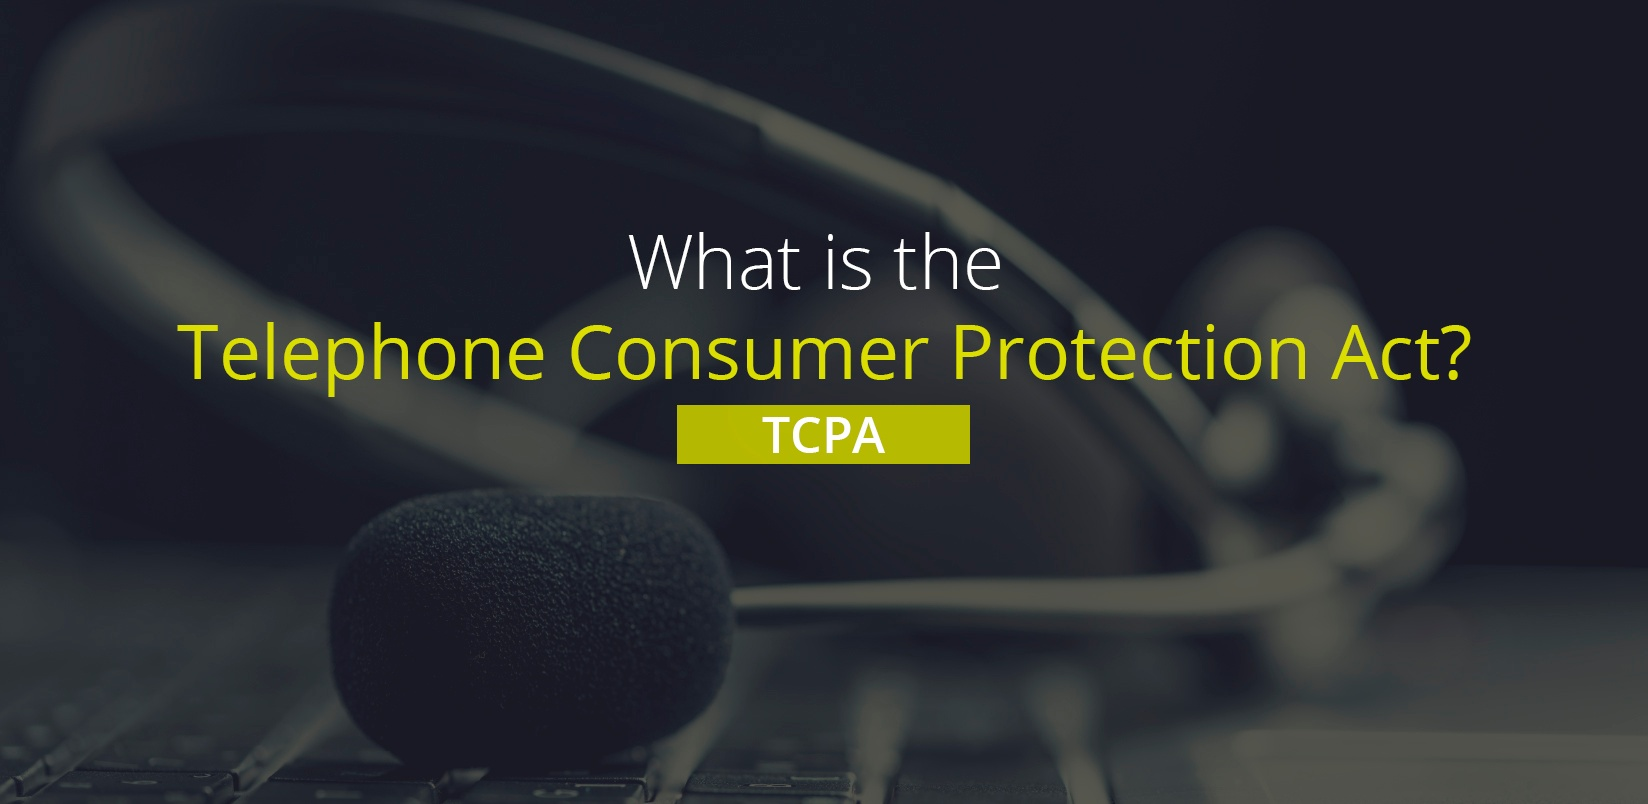 What_is_the_Telephone_Consumer_Protection_Act_TCPA.jpg